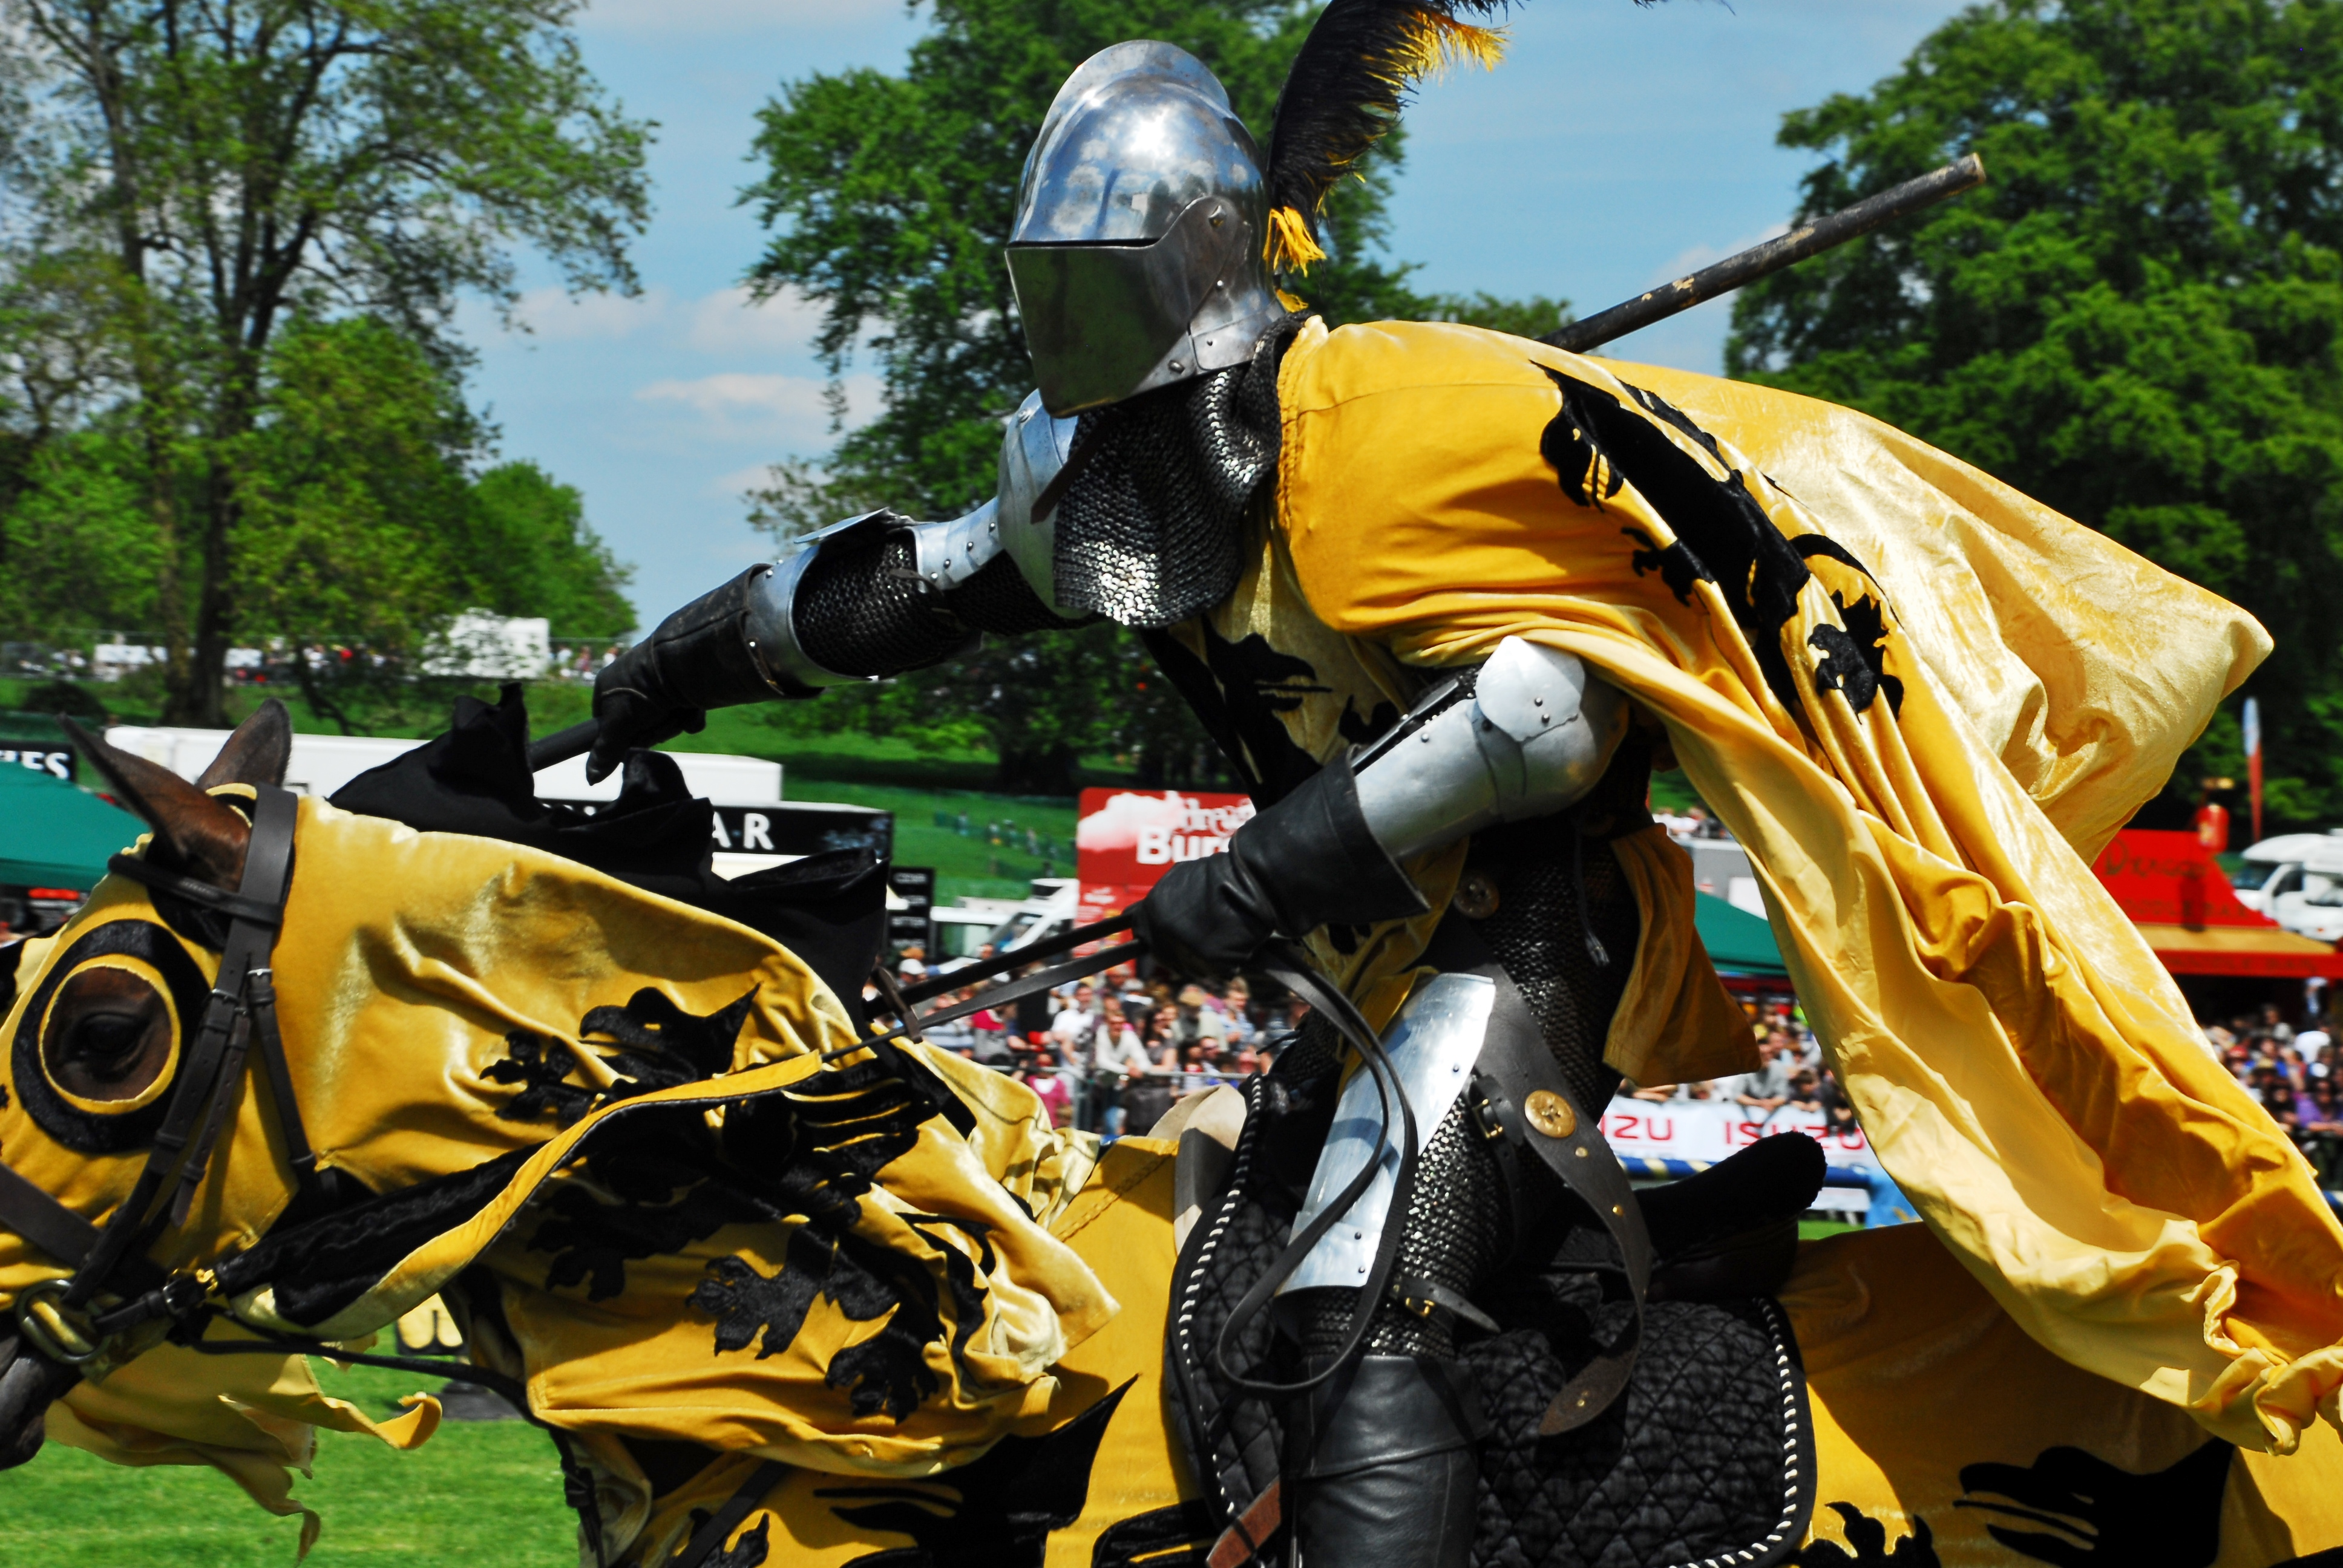 Middle Ages Knights Jousting Summer news from the knights Knights In The Middle Ages Jousting